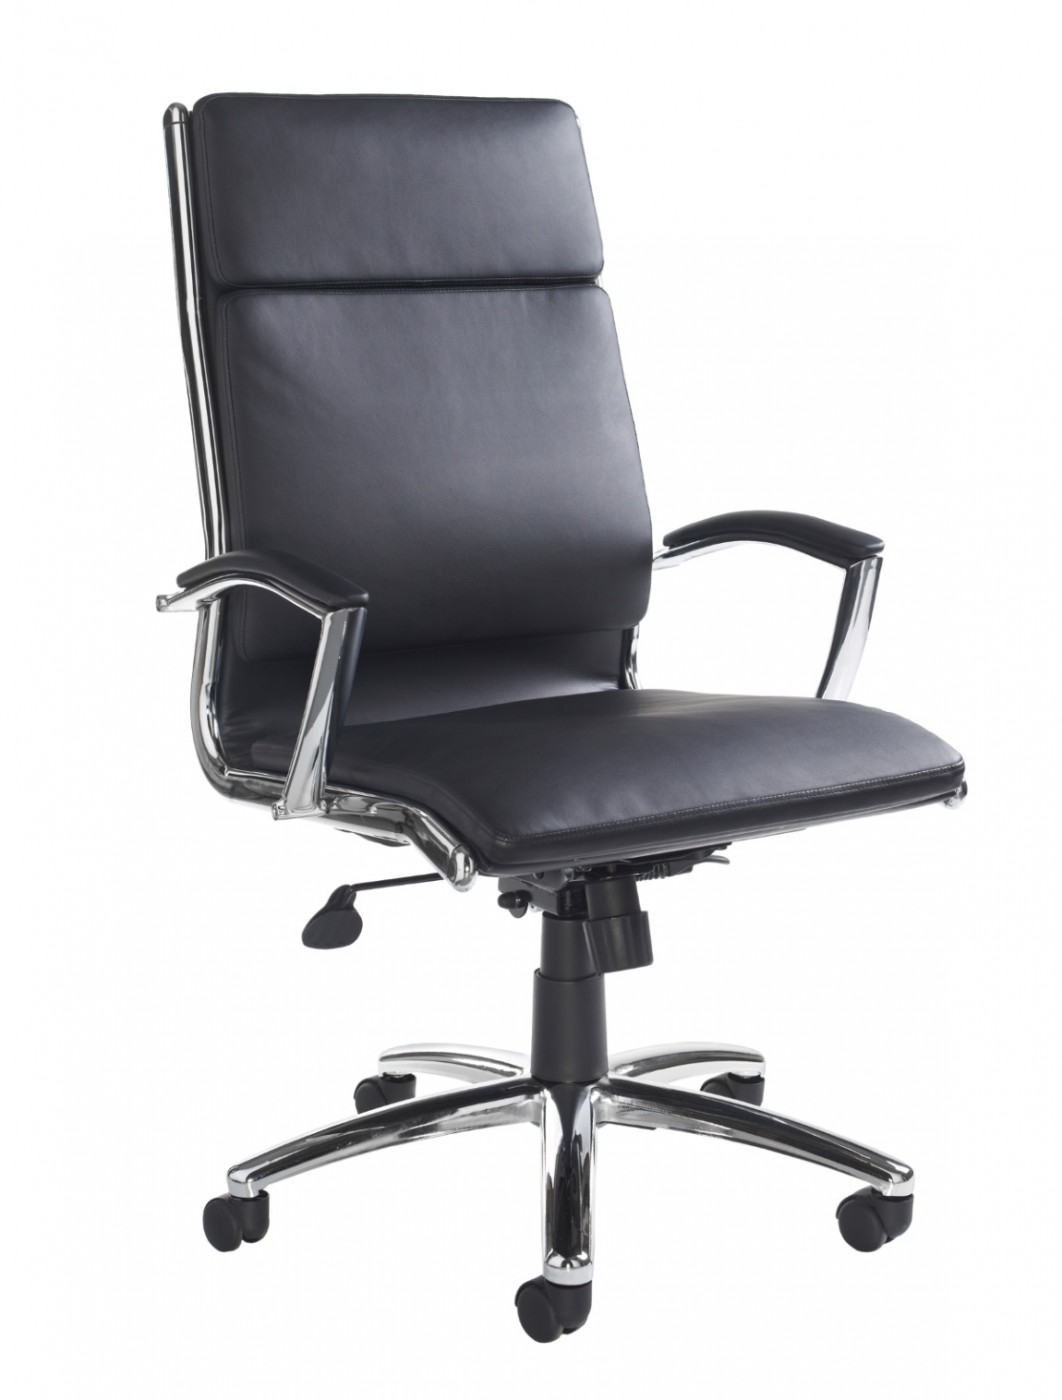 Office Chair Faux Leather High Back Florence Executive Chair FLO300T1 by Dams